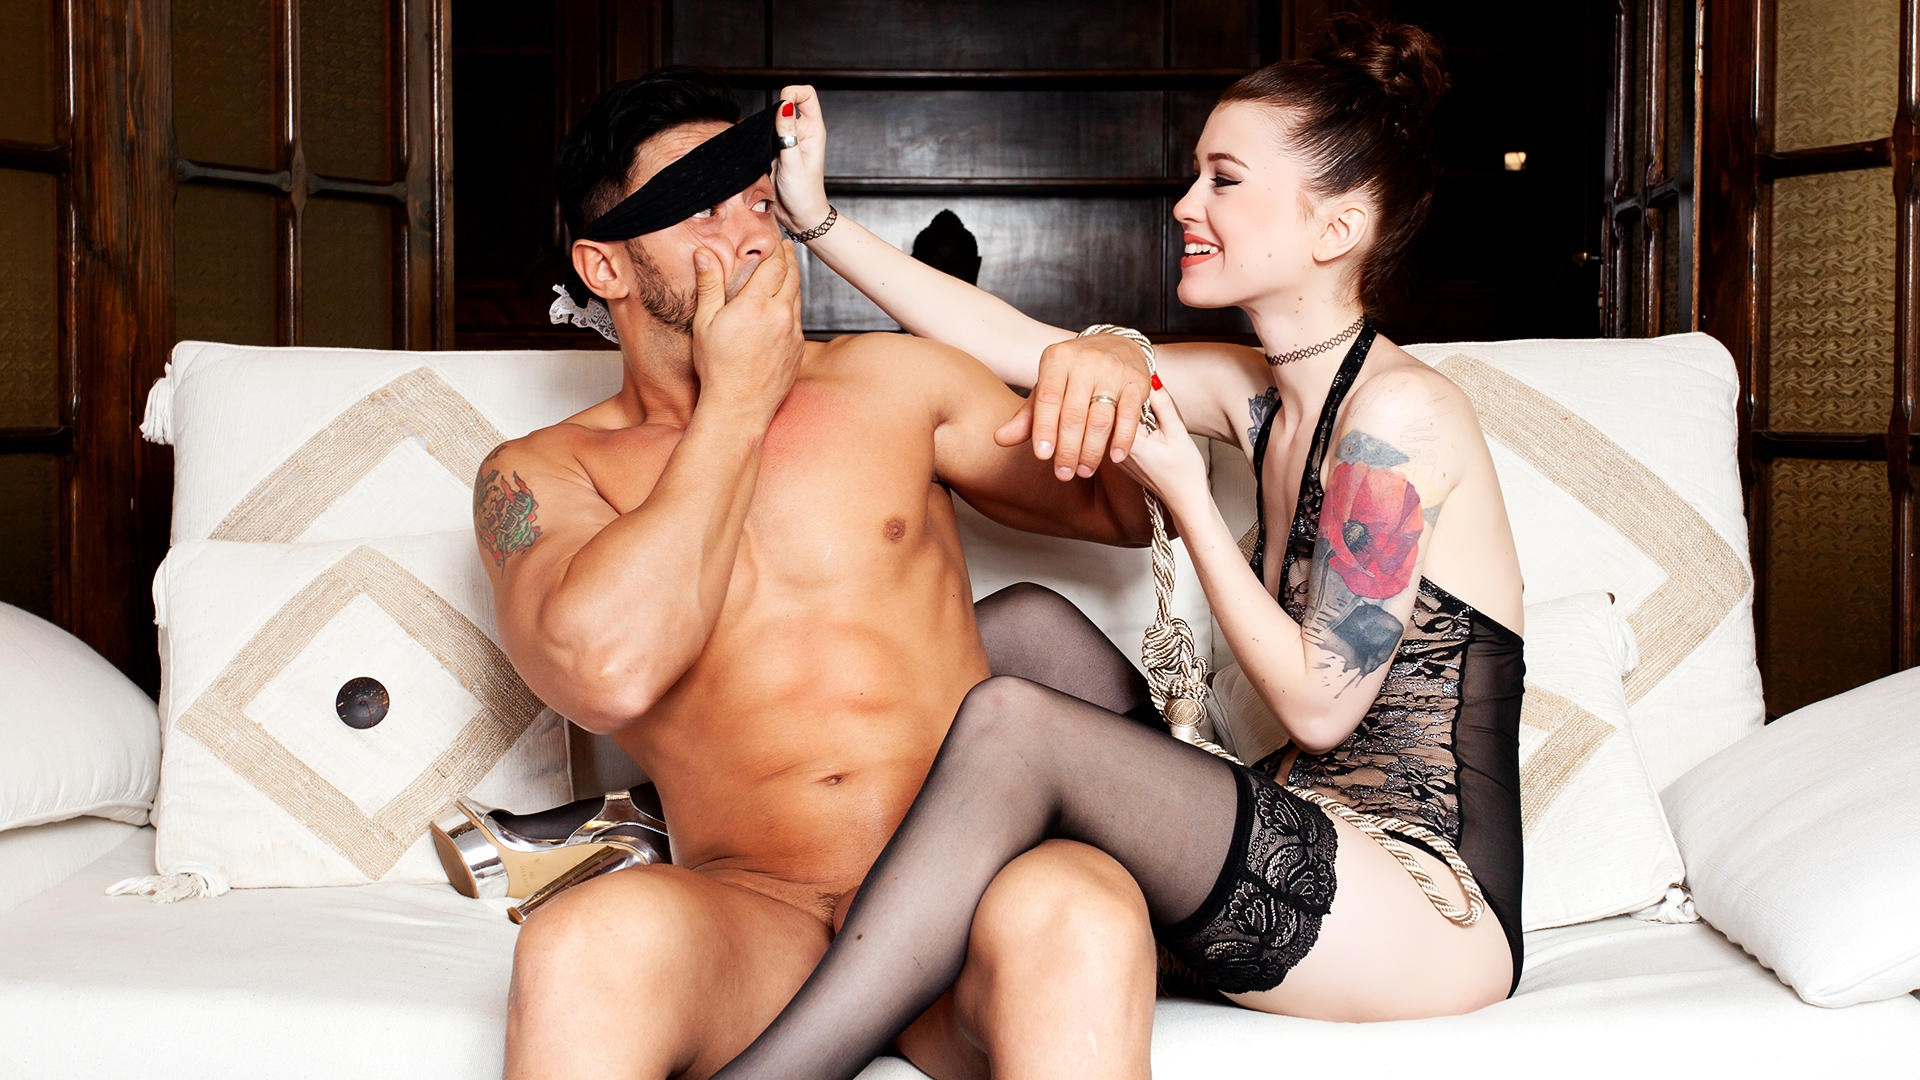 Watch Misha Cross get destroyed 🎬👇-  Link by Sharesome